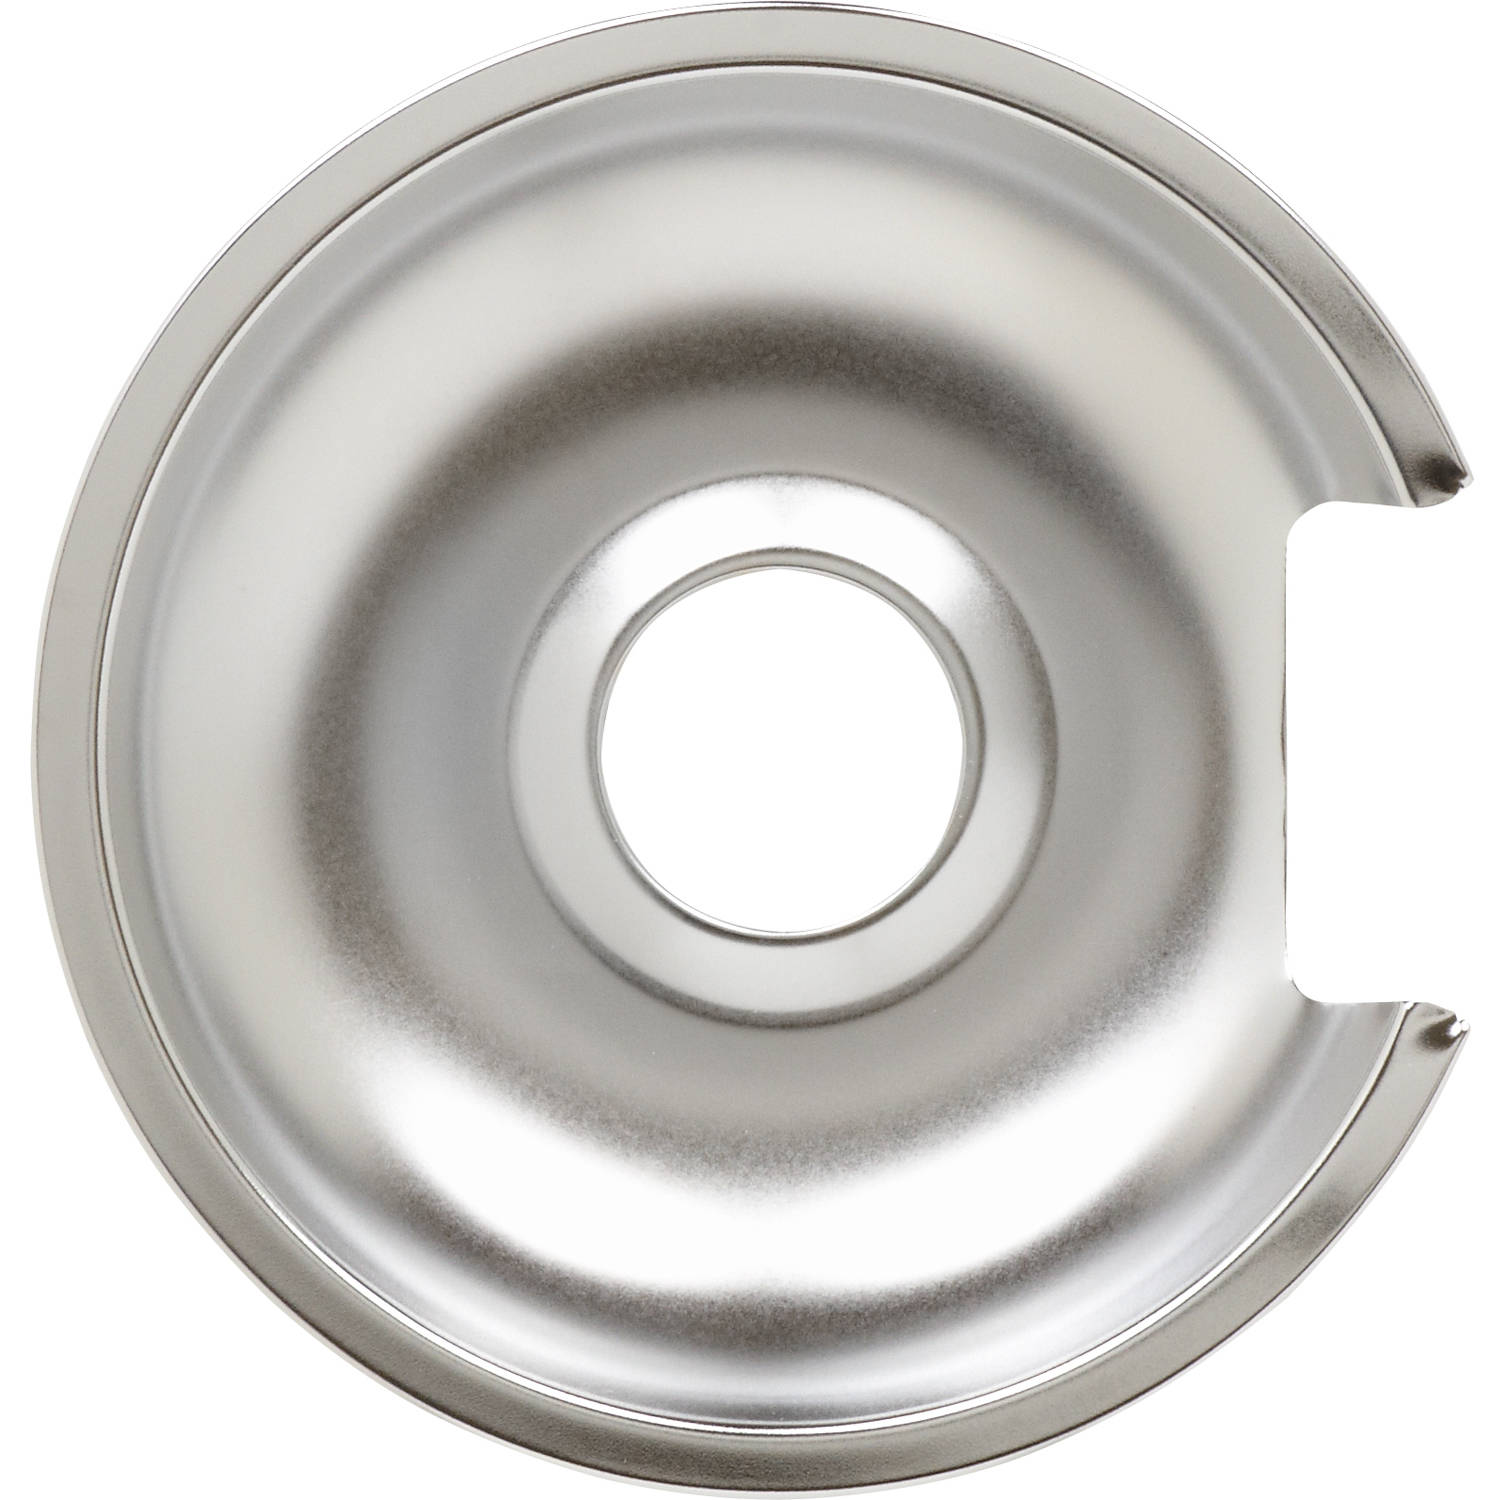 General Electric WB32X10013 8-Inch Drip Pan